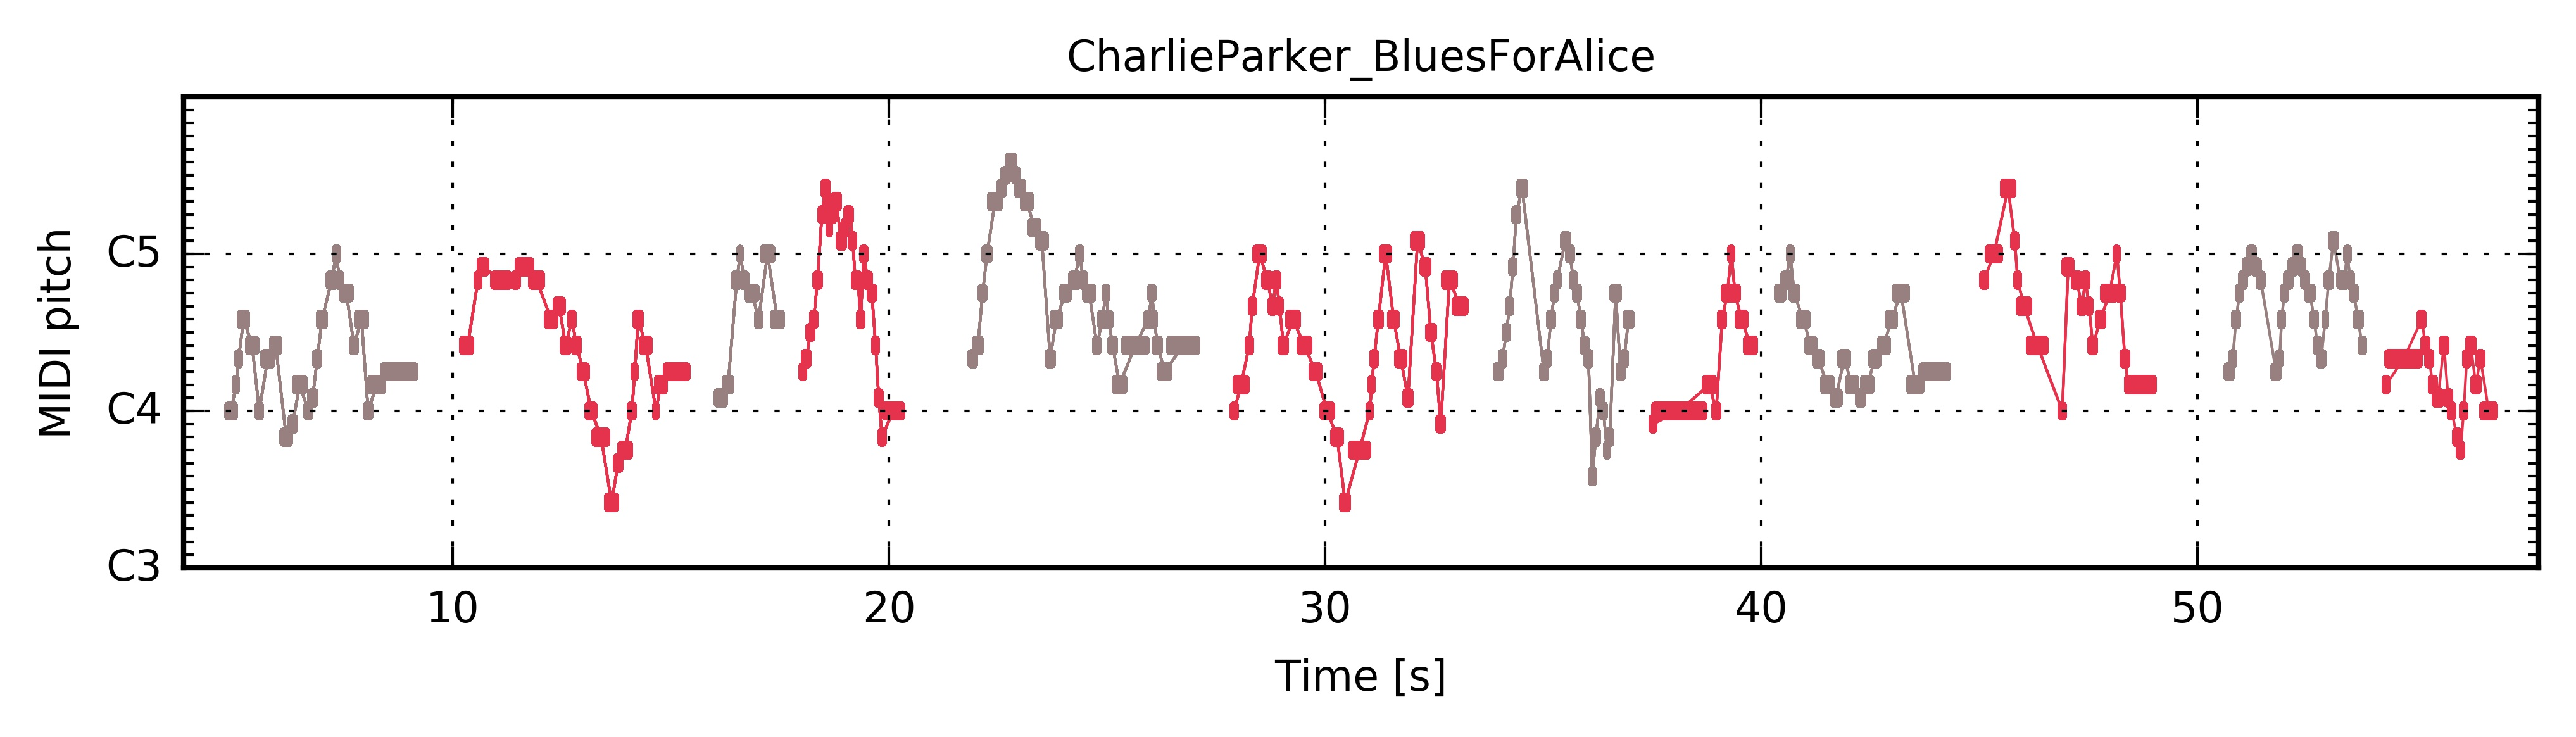 ../../_images/PianoRoll_CharlieParker_BluesForAlice.jpg